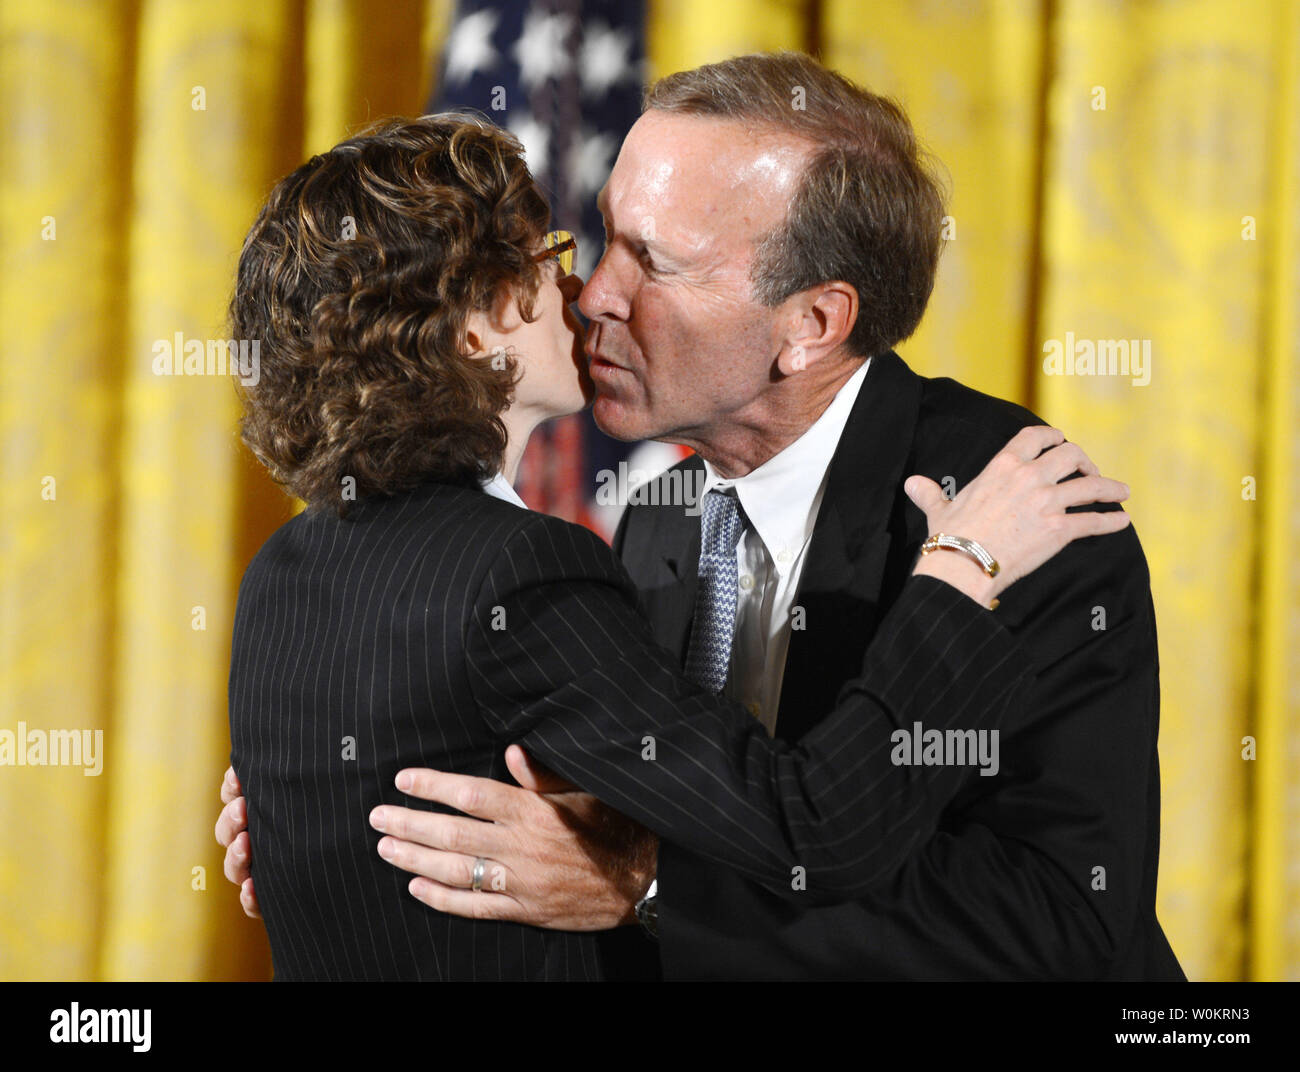 Points of Light Foundation Chairman Neil Bush, son of former President George H.W. Bush, hugs Points of Light Foundation CEO Michelle Nunn during the presentation of the 5,000th 'Points of Light' Foundation award with President Barack Obama in the East Room of the White House in Washington, DC on July 15, 2013.  President Bush started the national movement to advance volunteerism and community service 20 years ago when he was the 41st president.  Kathy Hamilton and Floyd Hammer won the award.   UPI/Pat Benic - Stock Image